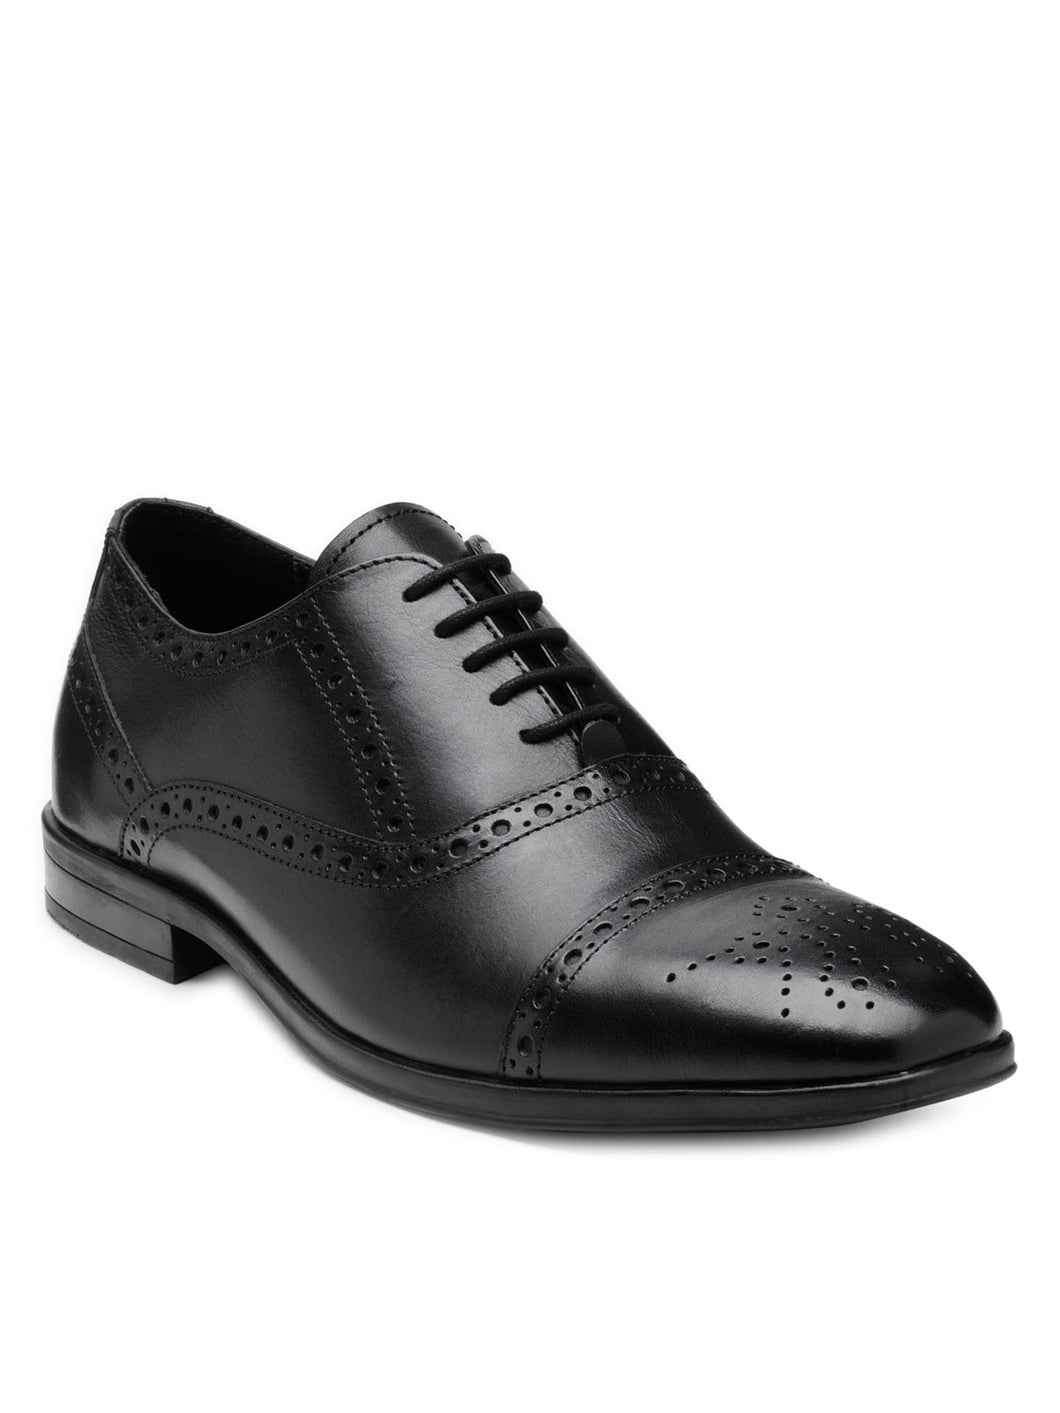 Teakwood Leather Men's Black Oxford/Brogue Shoes